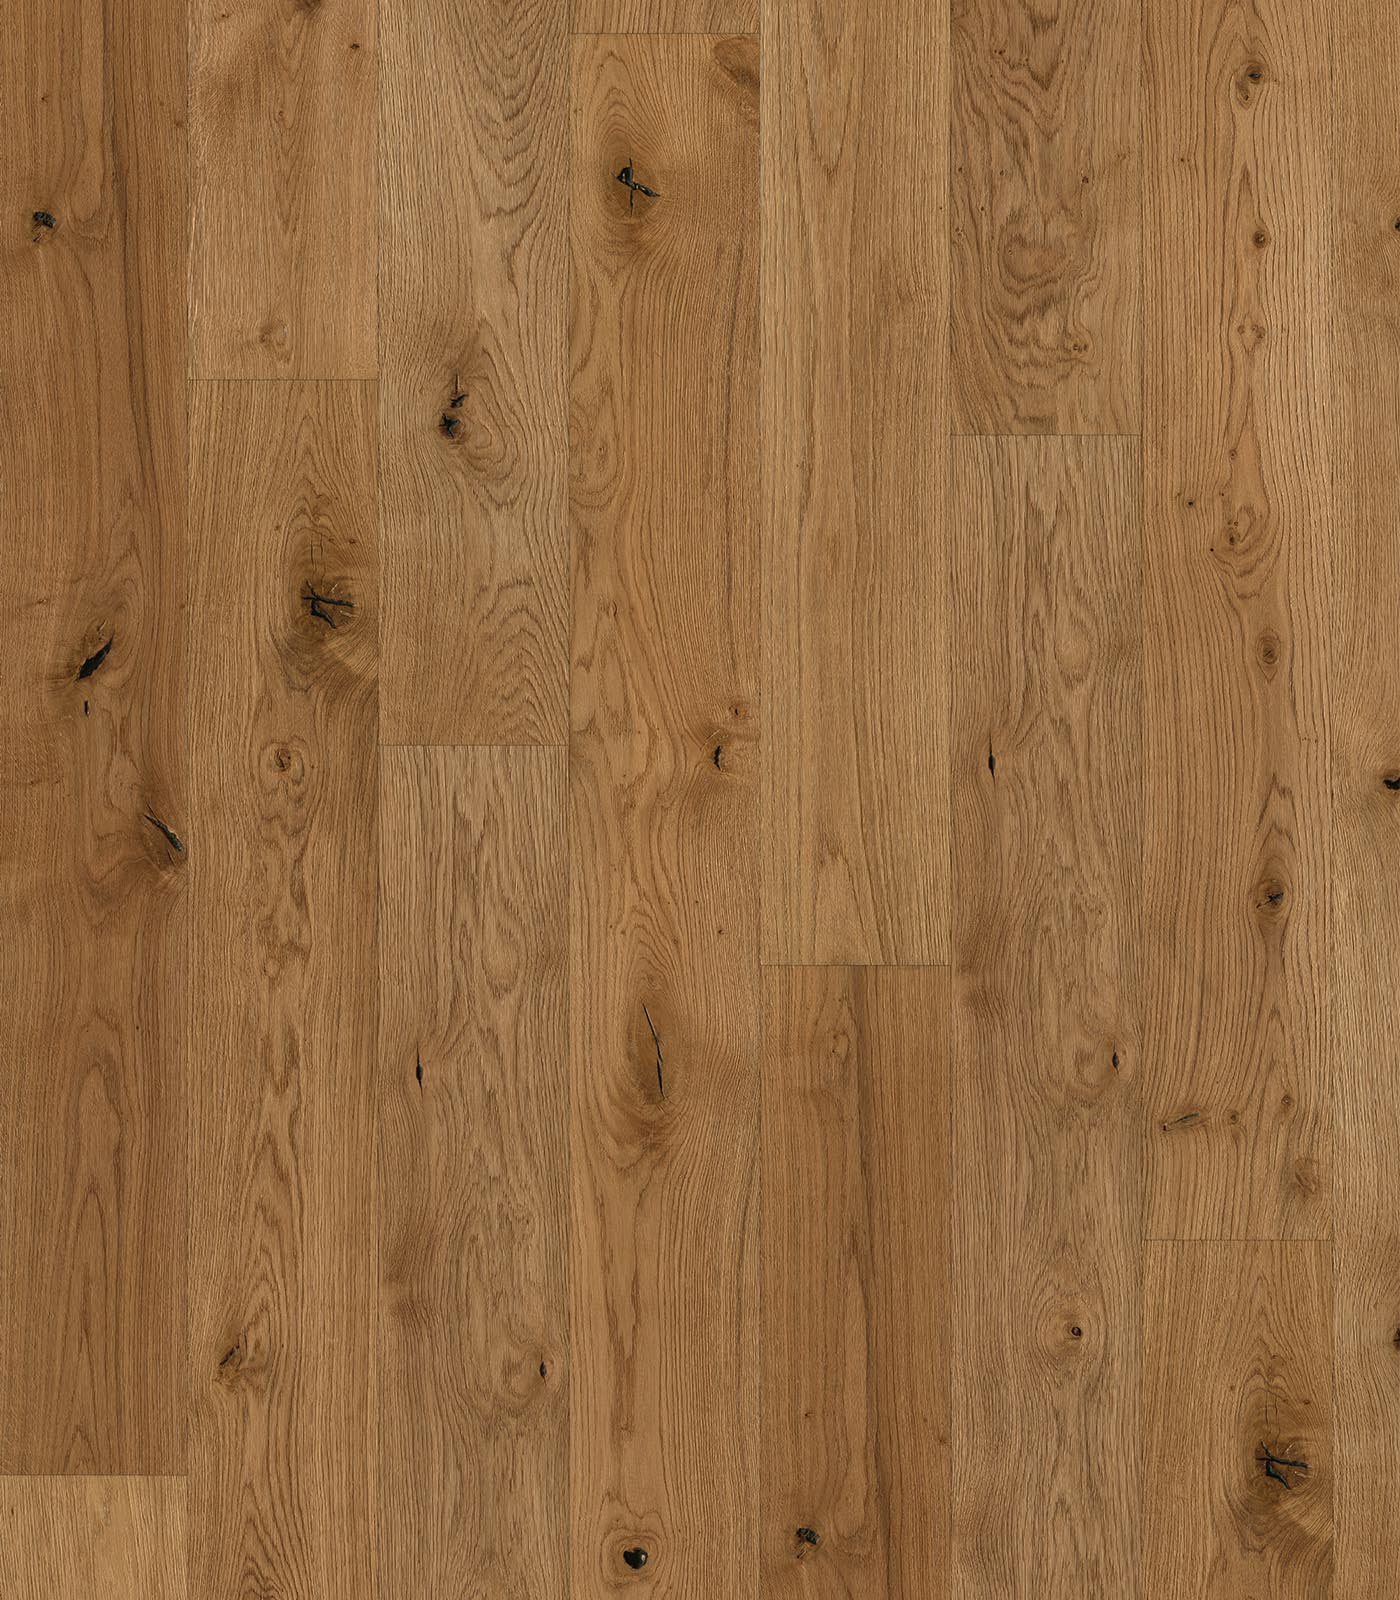 Coimbra-Heritage Collection-European Oak Floors-flat